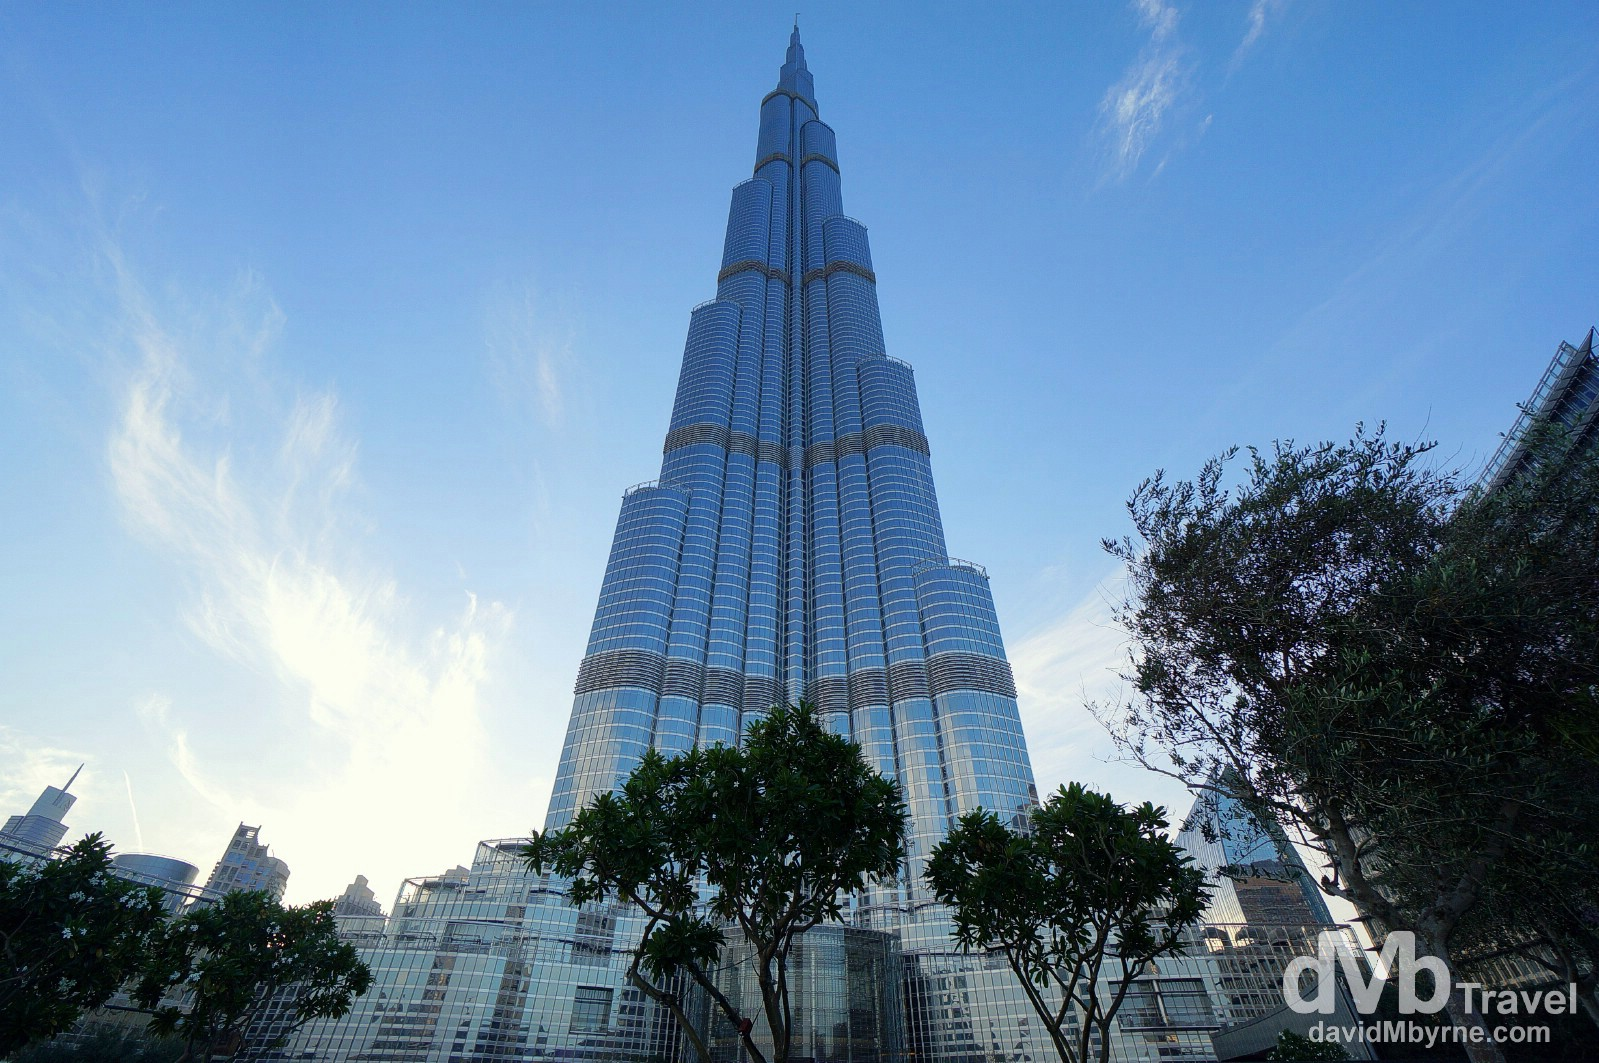 At the foot of the Burj Khalifa in Downtown Dubai, UAE. April 18th, 2014.